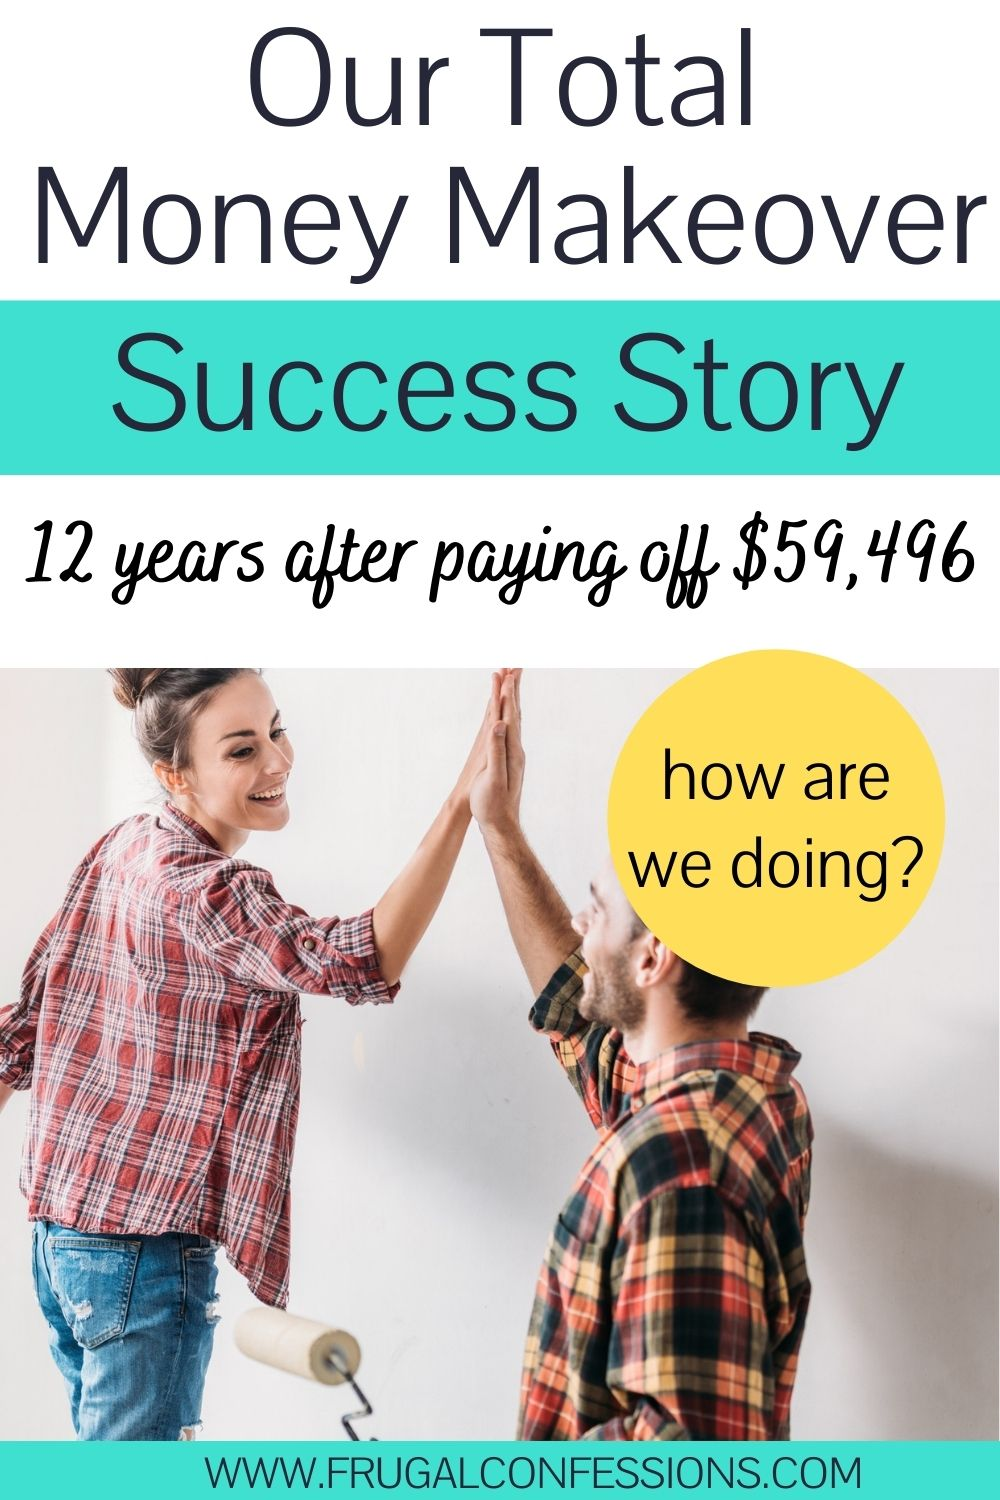 """couple slapping each other five while painting a wall, text overlay """"our total money makeover success story 12 years after paying off $59,496"""""""